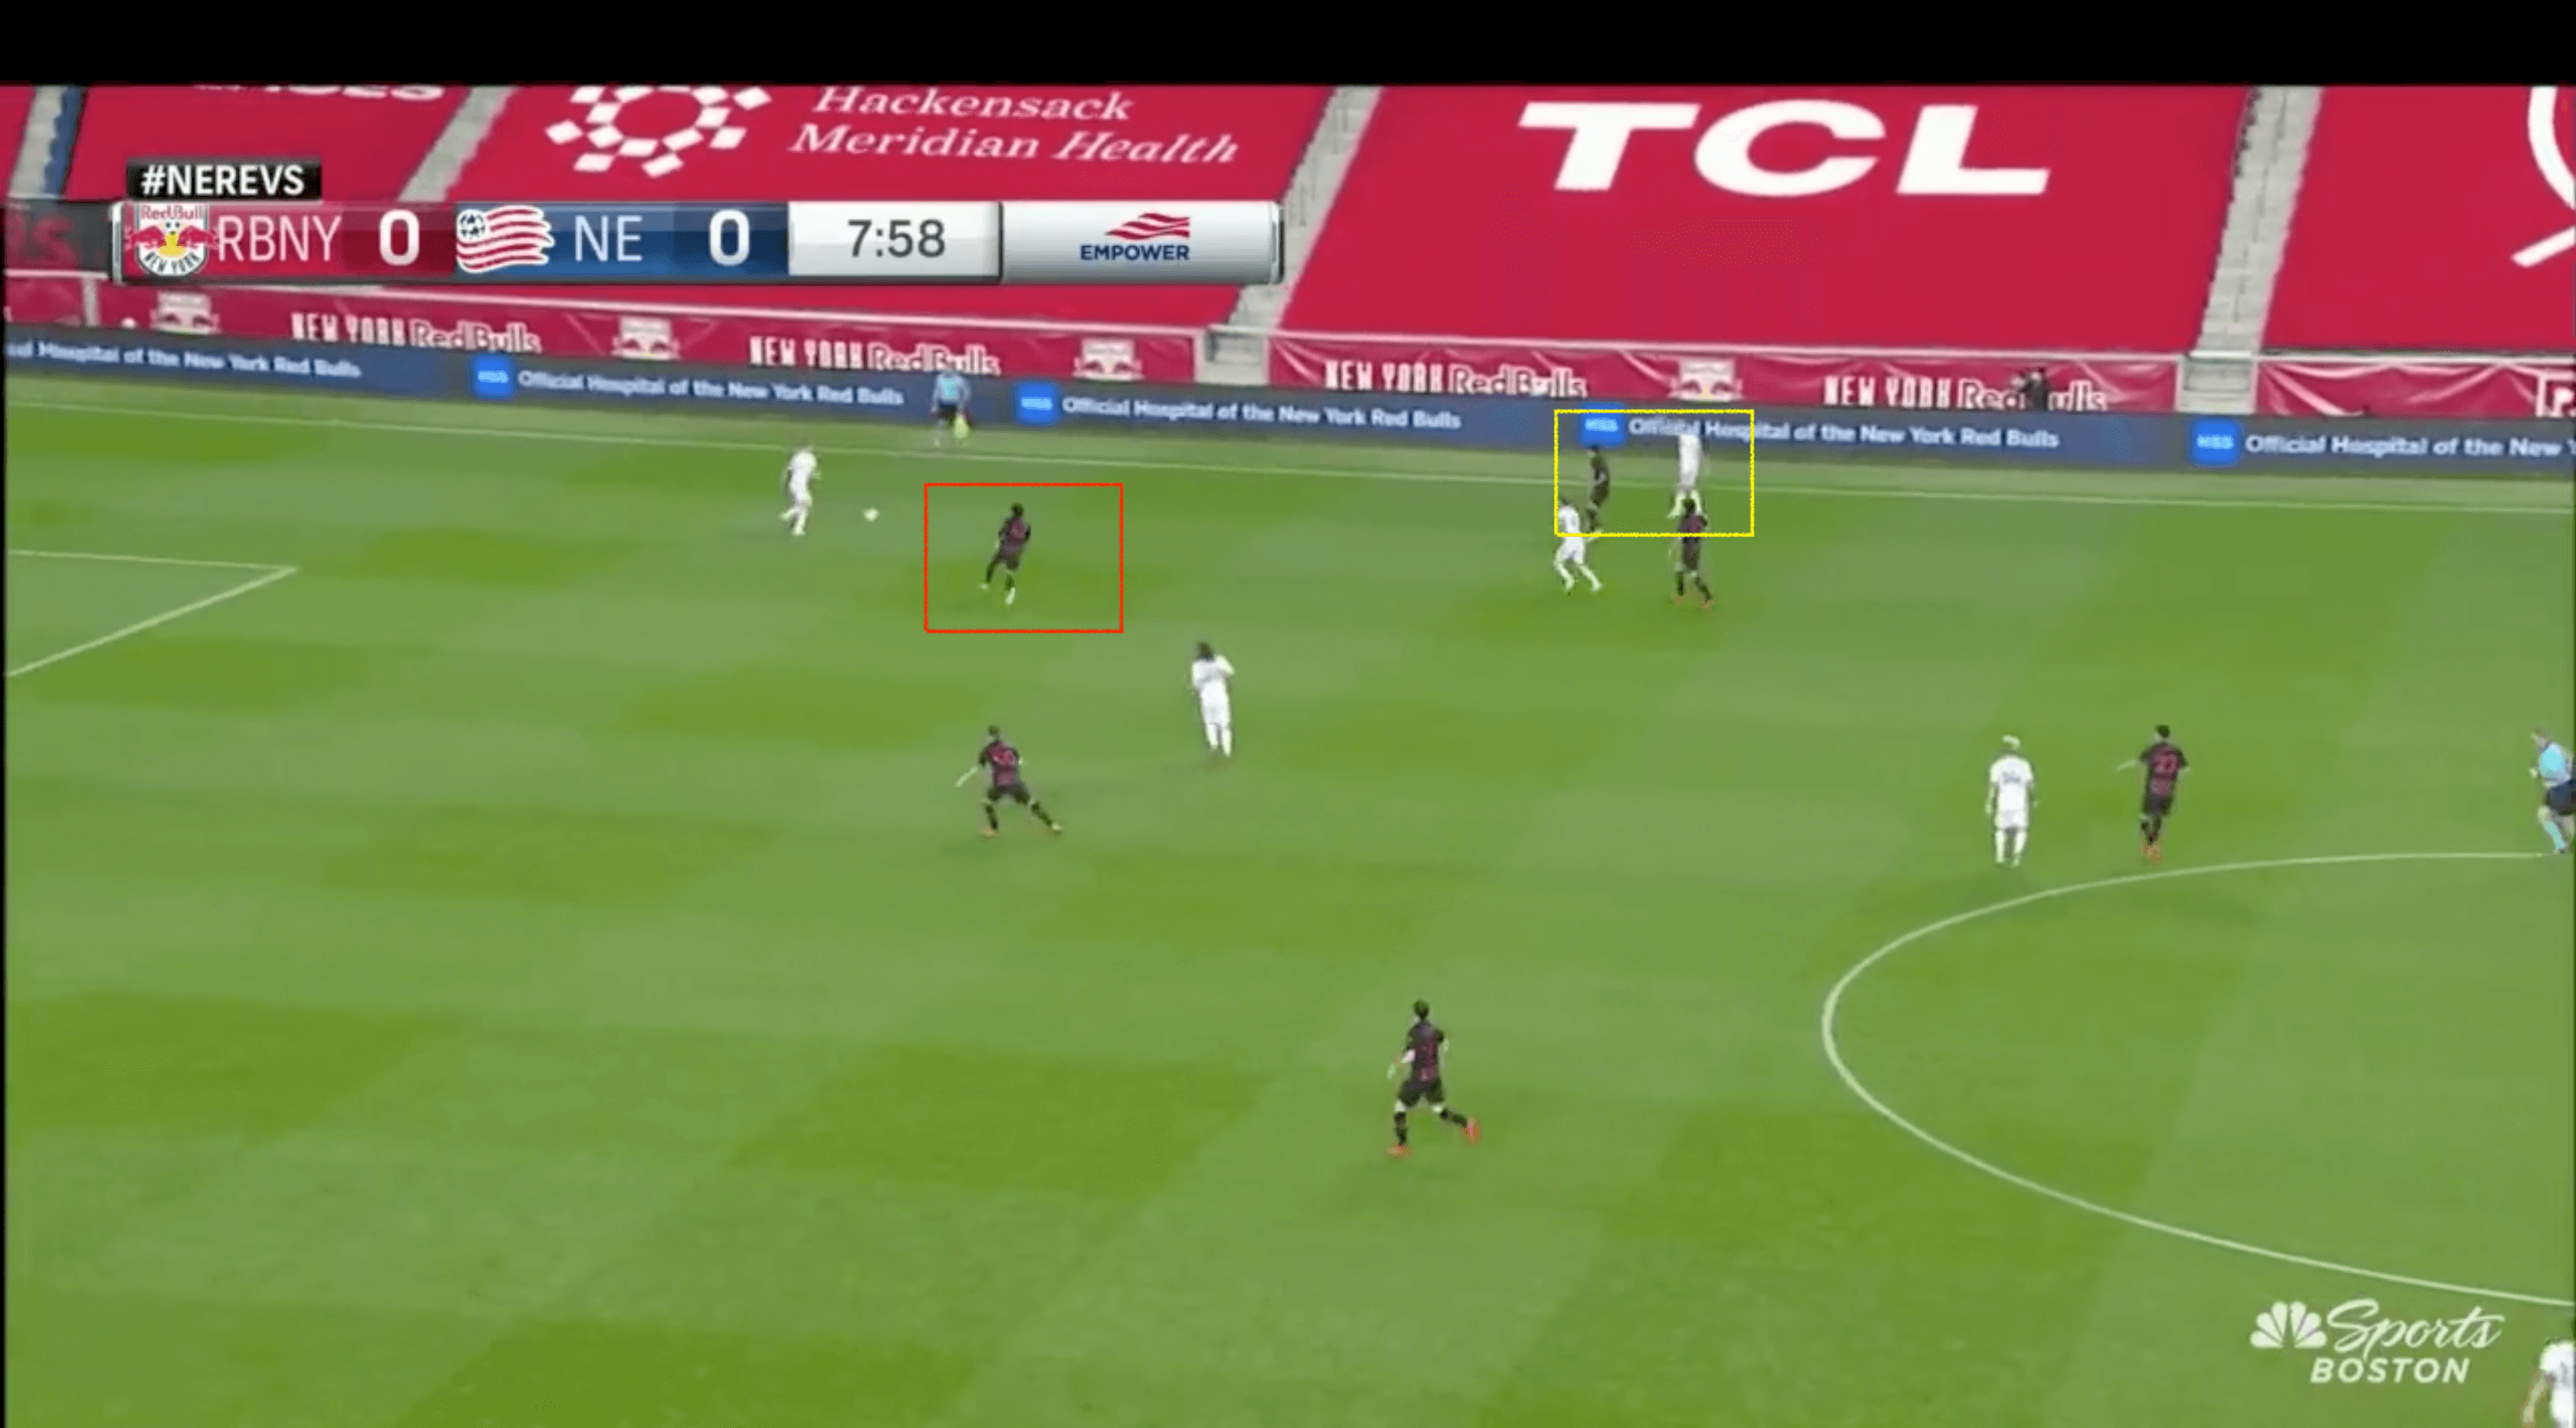 MLS 2020: New York Red Bulls vs. New England Revolution - tactical analysis tactics